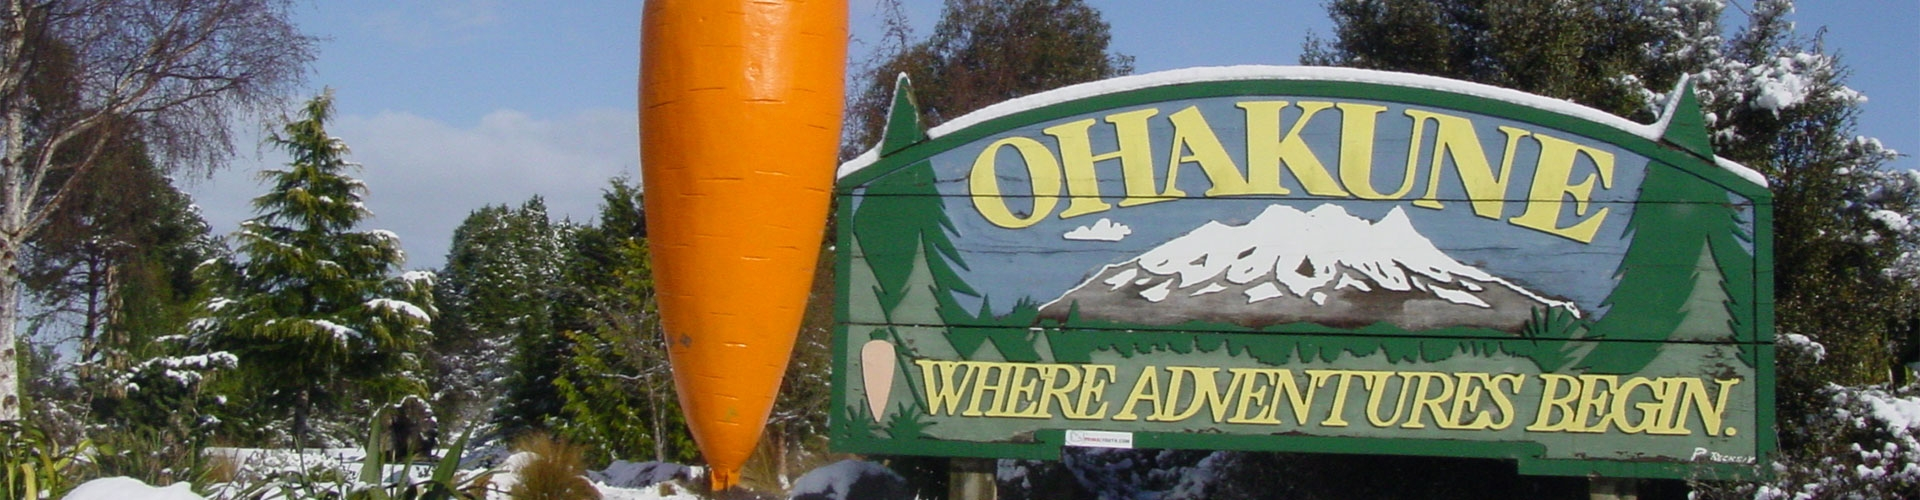 accommodation in central Ohakune